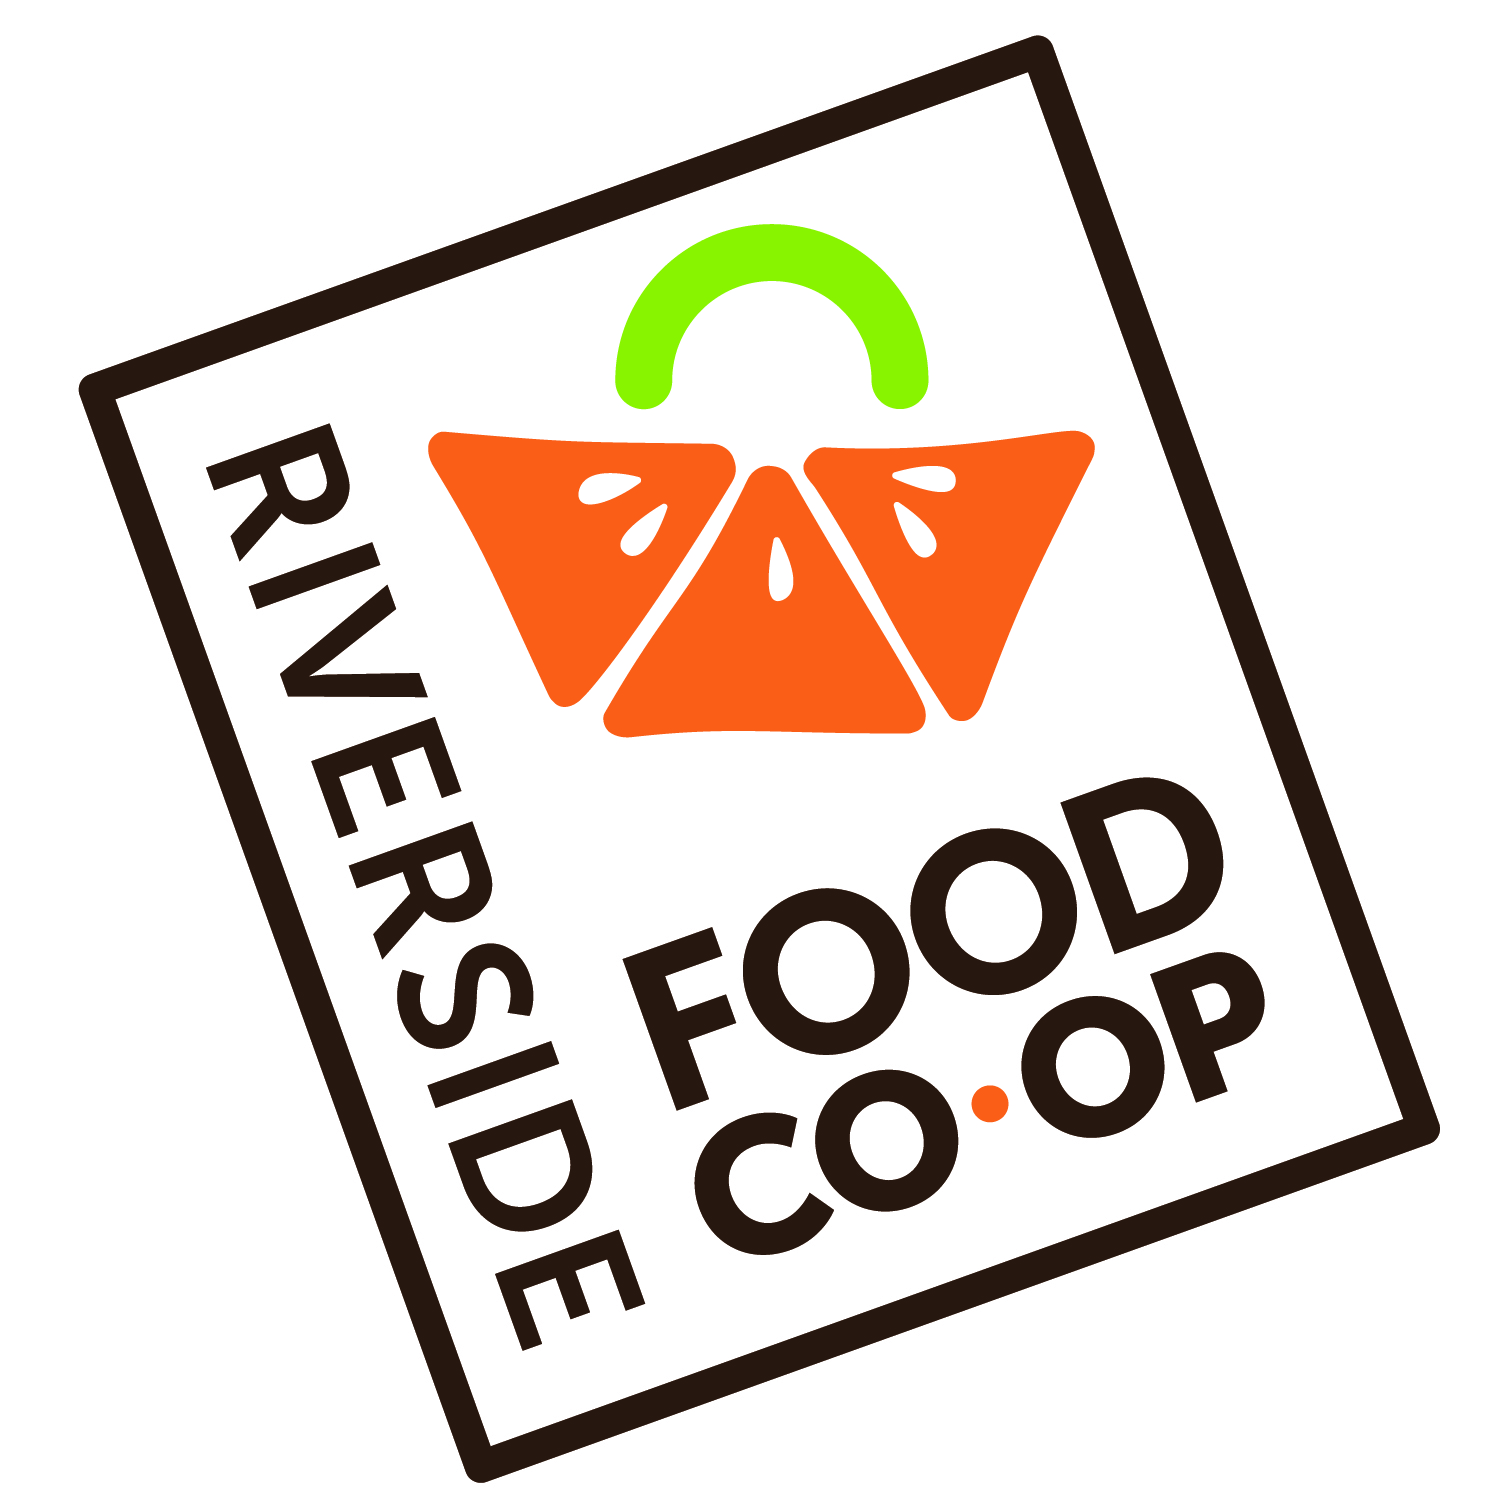 Riverside Food Coop